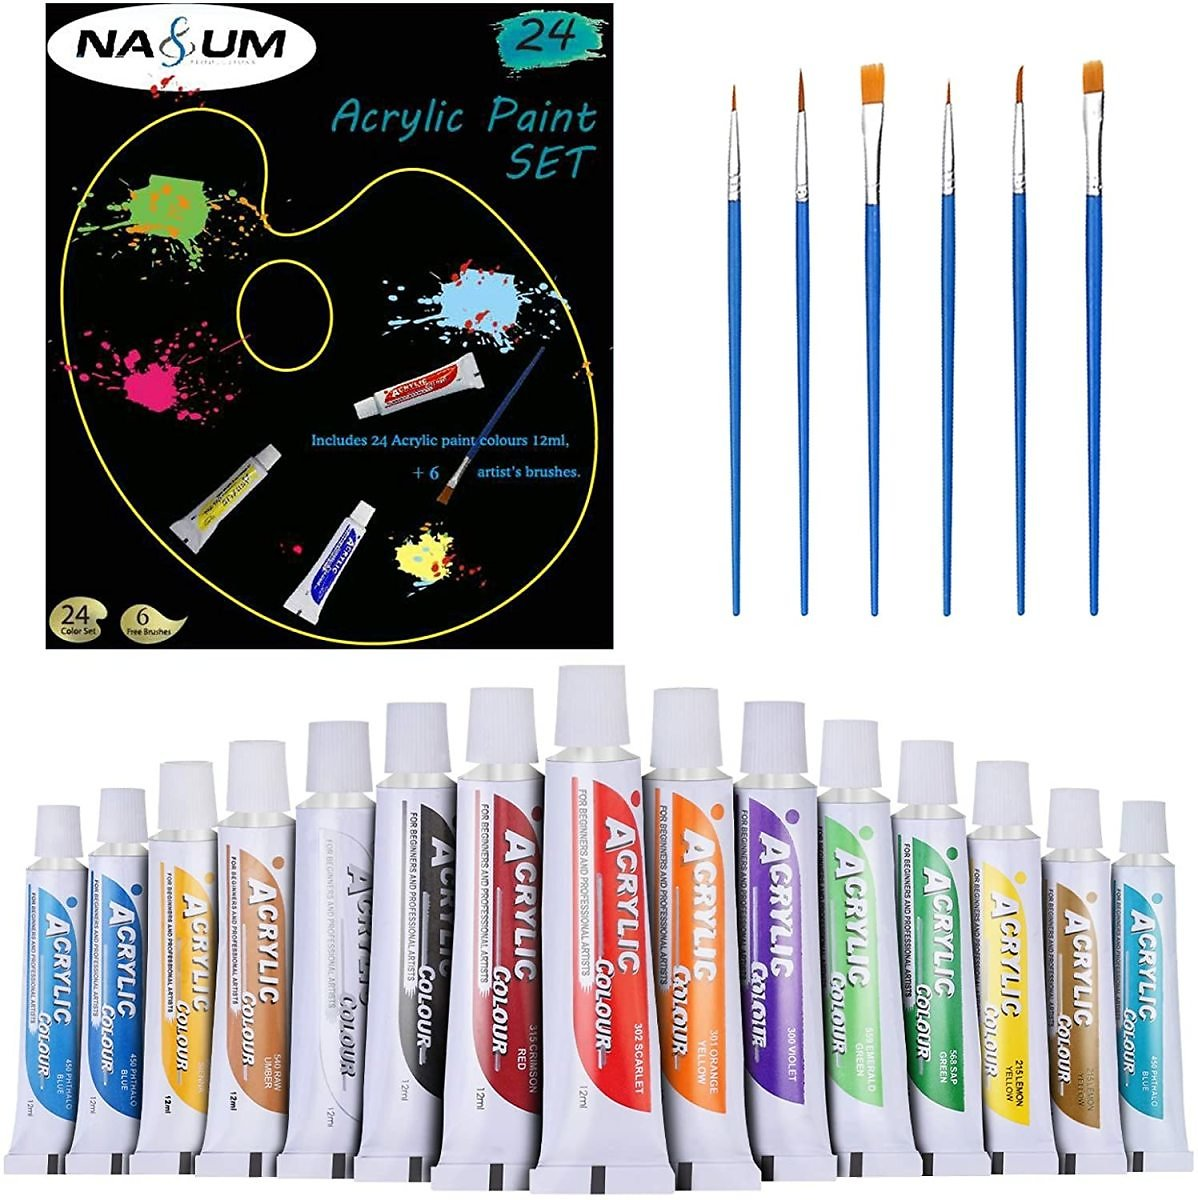 Acrylic Paint Set, NASUM 24 Color Tubes of 0.4 Oz (12 Ml) & 6 Painting Brush, Art Set for Kids, Students, Beginners, Artists, Cr